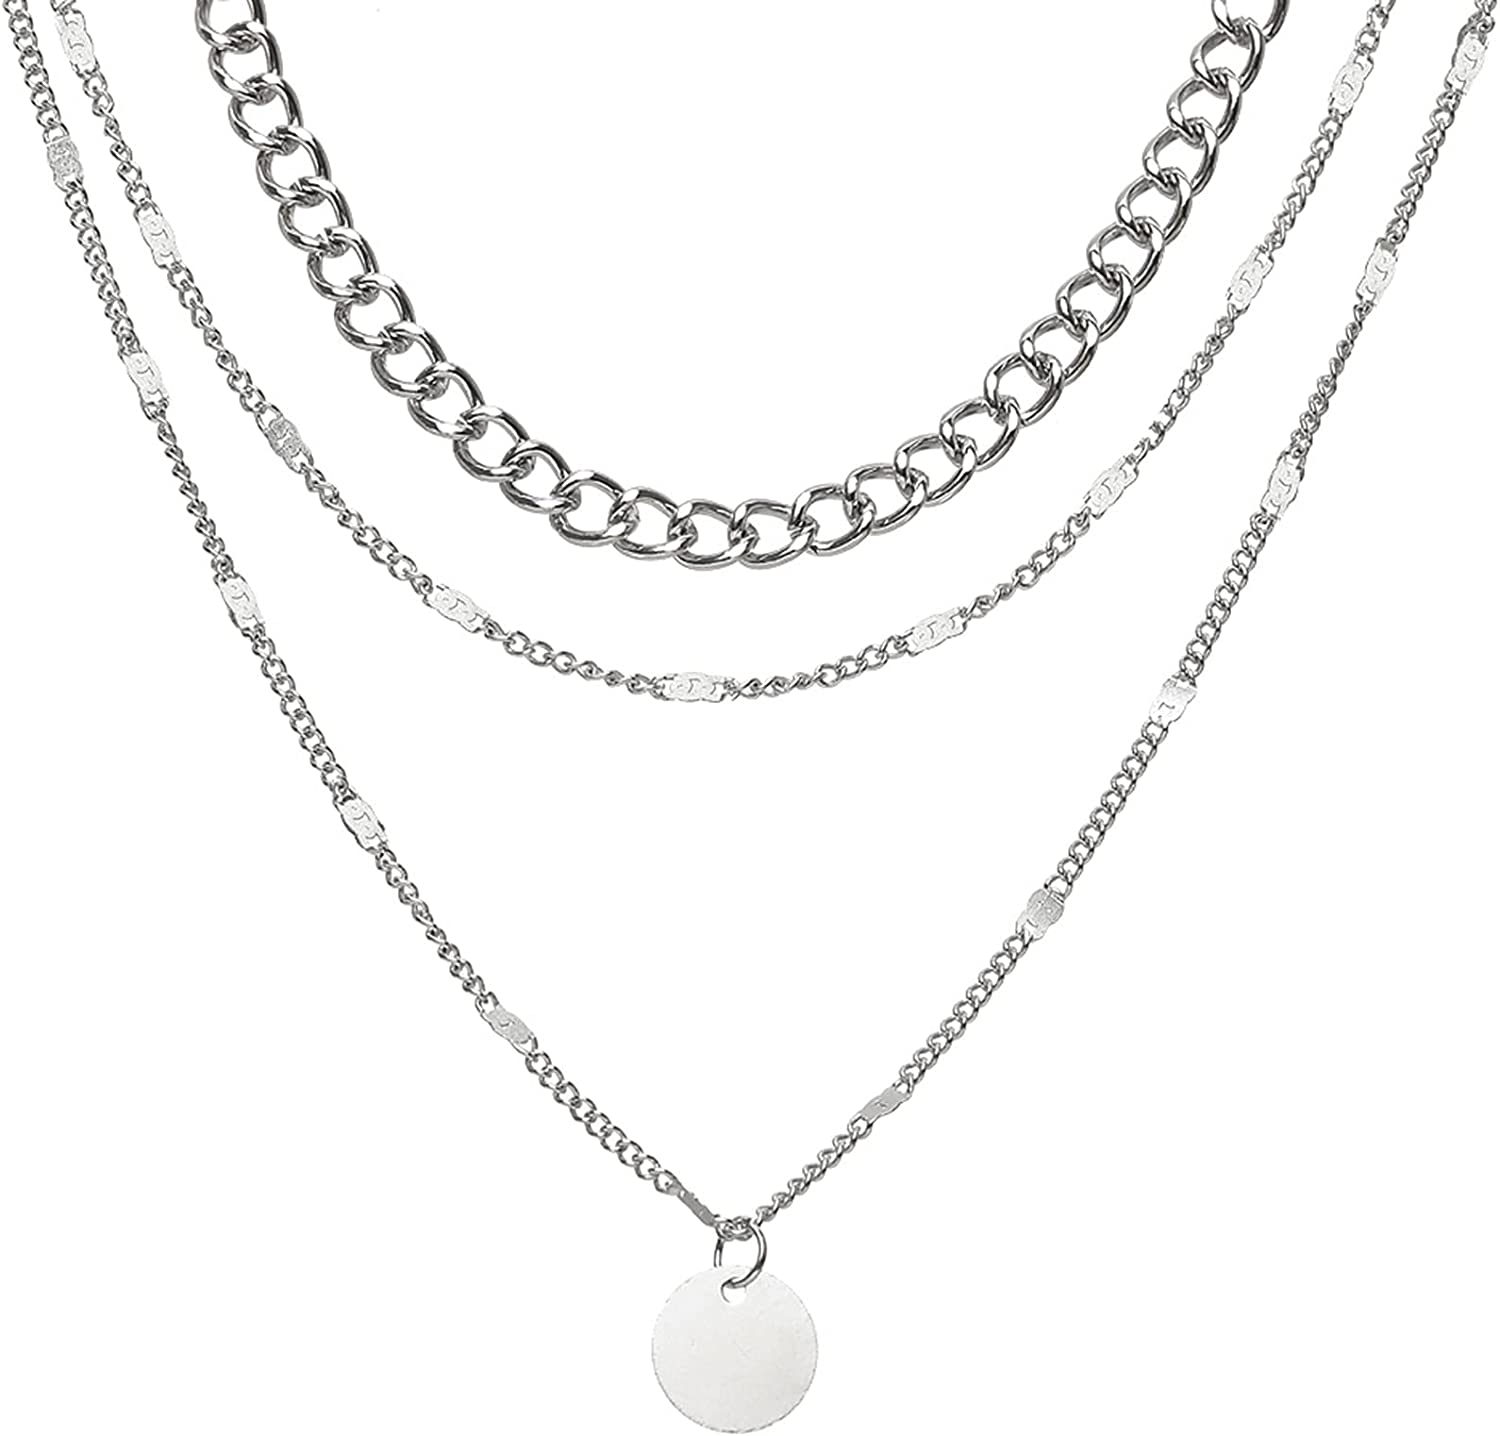 Underleaf Minimalist Disc Chokers Necklace Layered Circle Necklace Y Pendant Necklace for Women